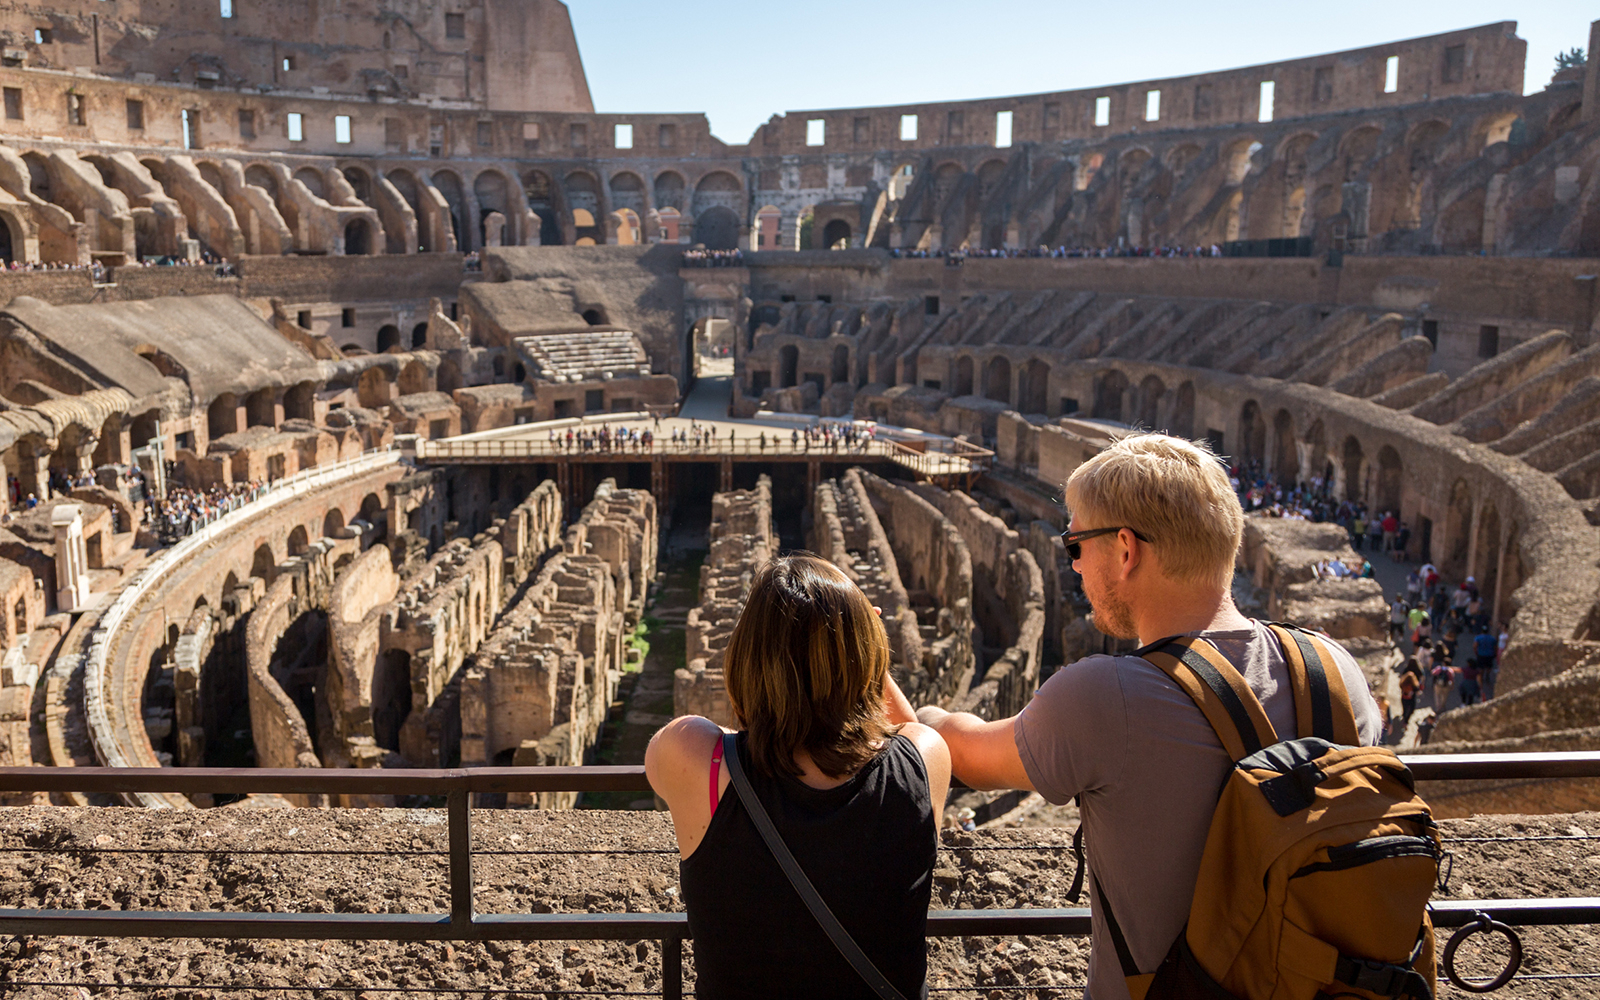 A6d5b82d 99ca 41d8 88b3 7fc72b4c4ddf 8848 rome express colosseum guided tour with gladiator entrance and arena floor 12